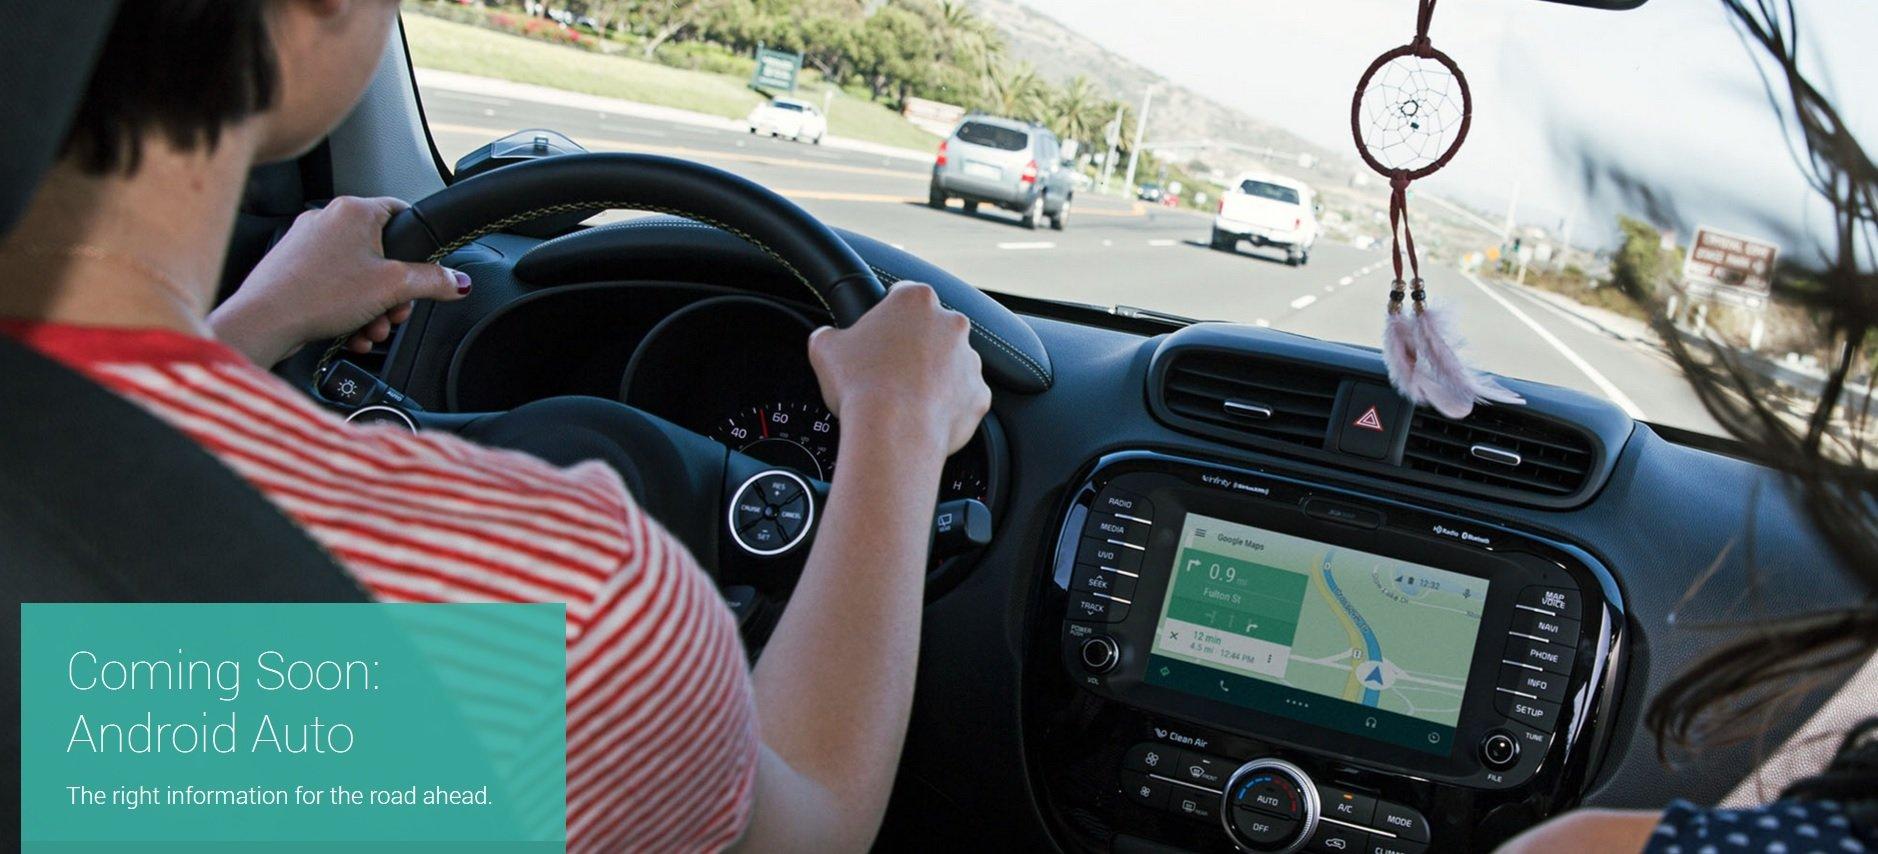 Android Auto: Google to boost in-car connectivity